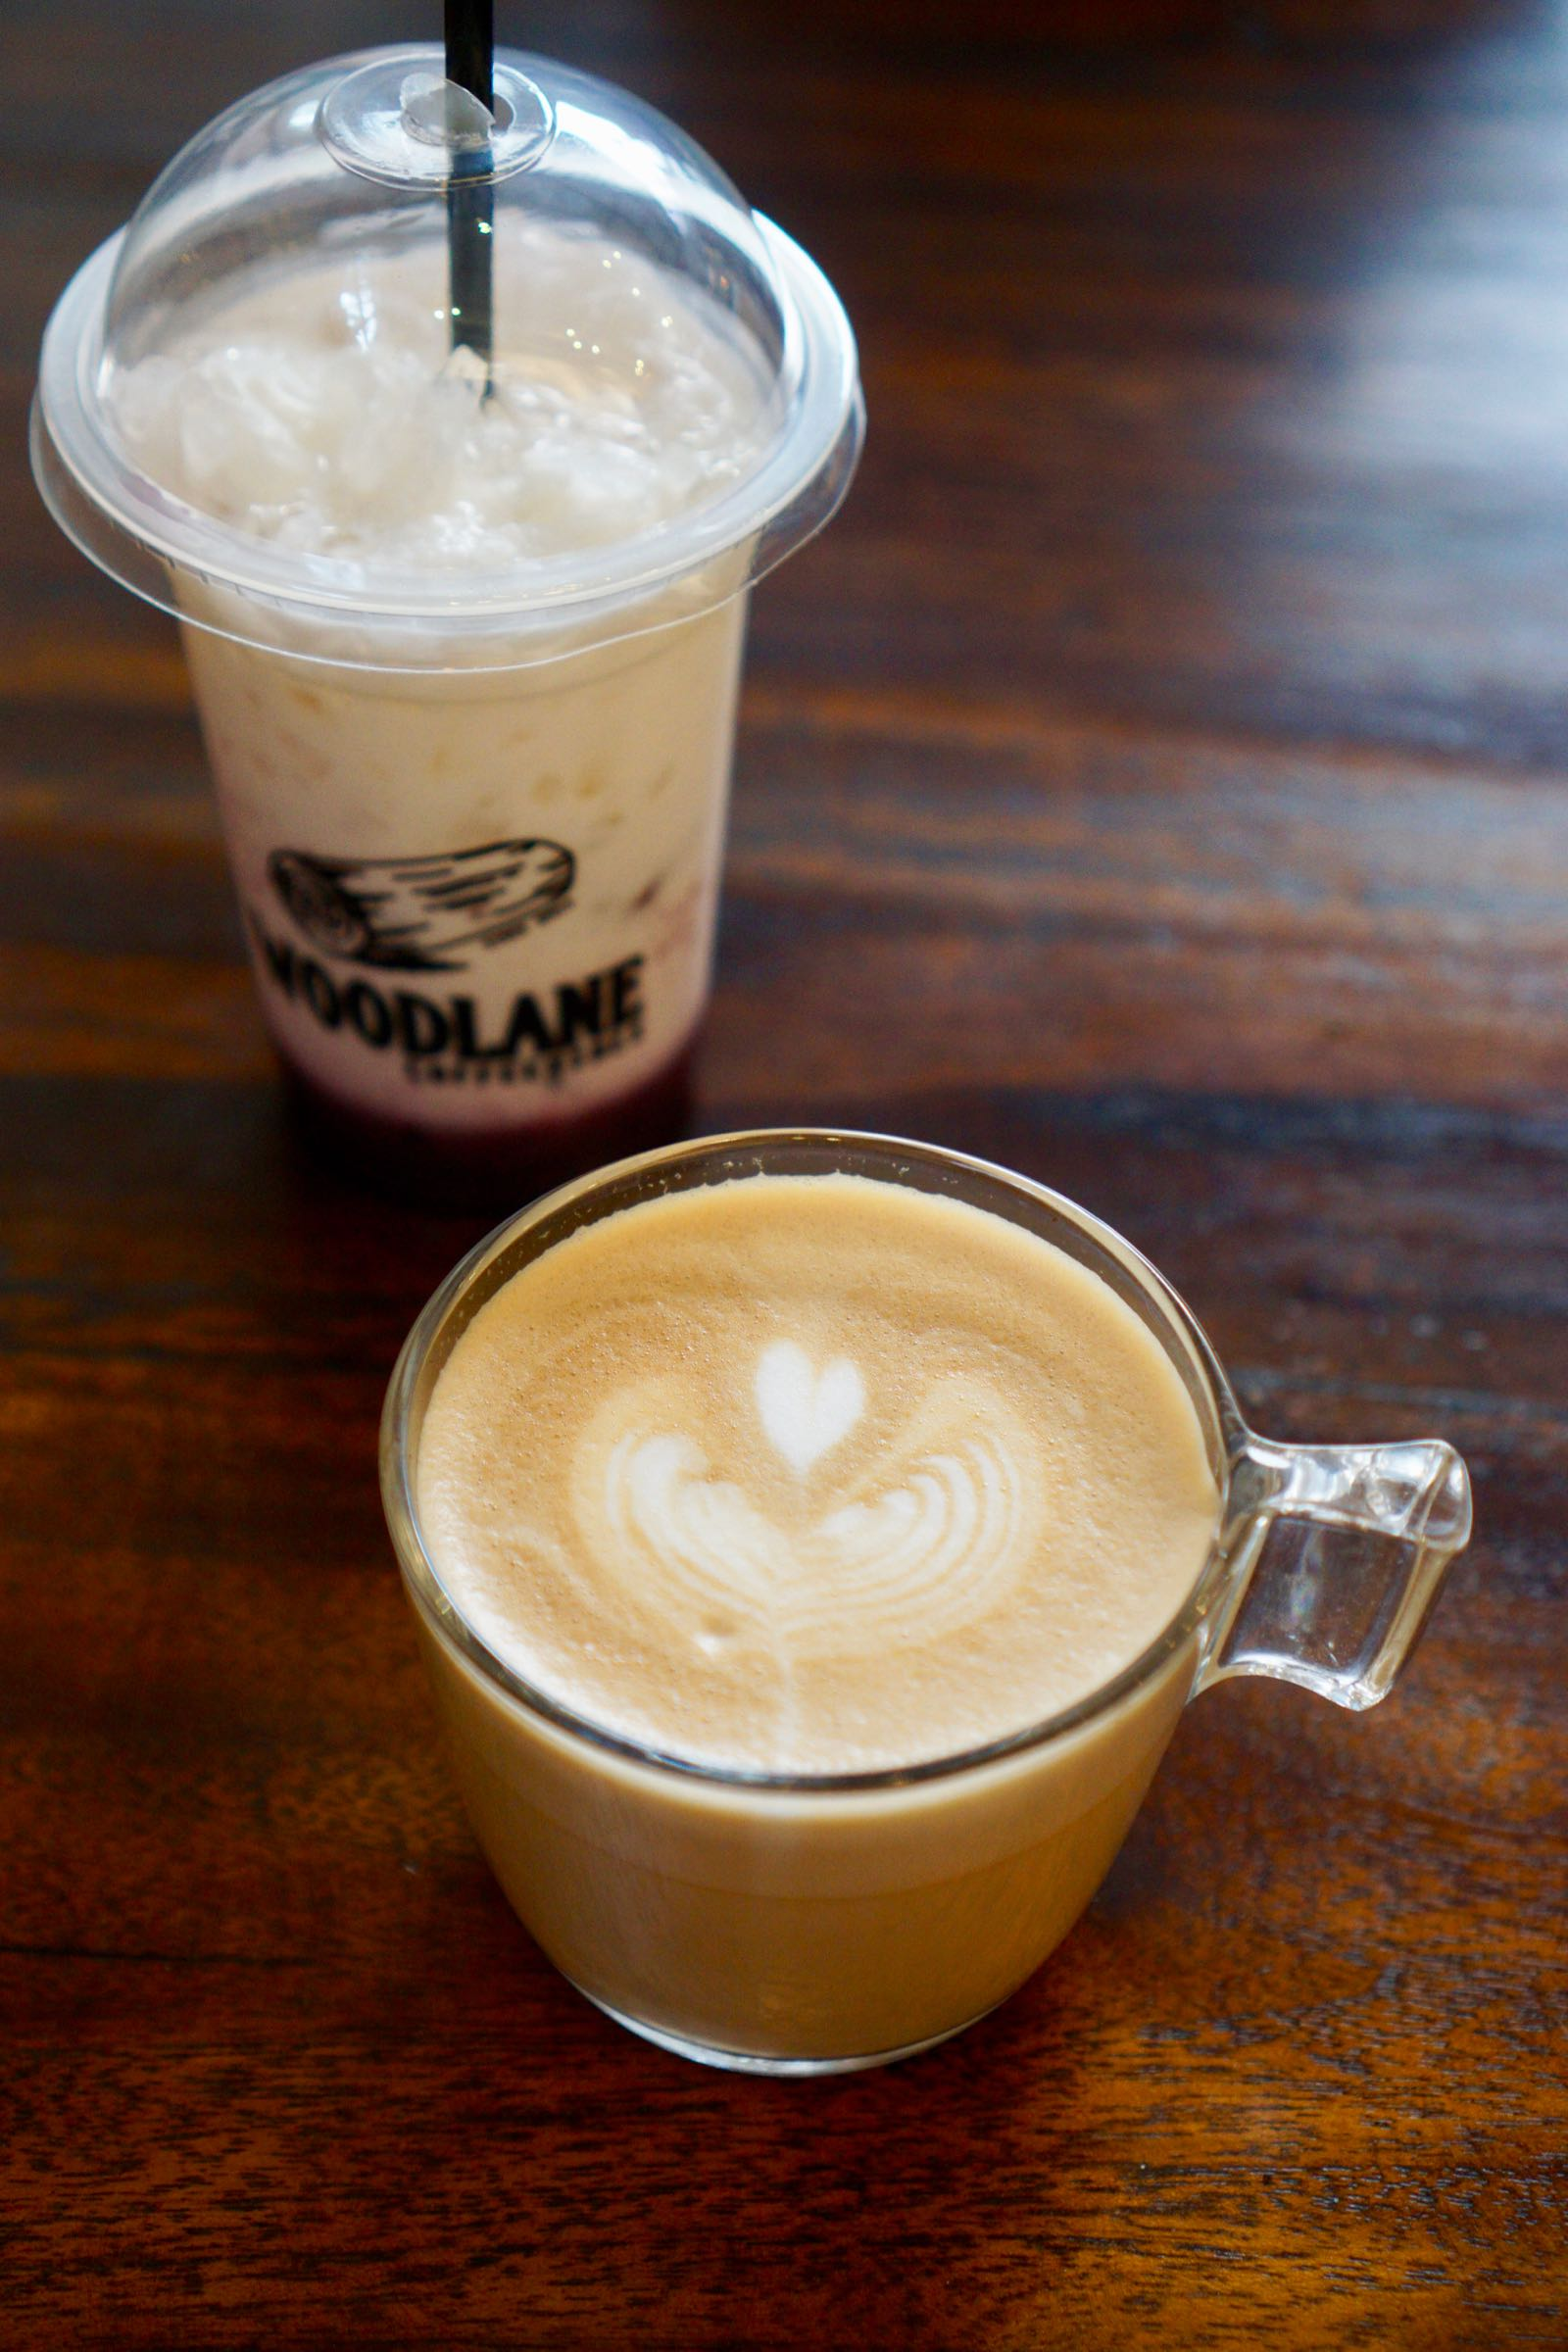 new coffee shops in bandung: reviewed and updated regularly!